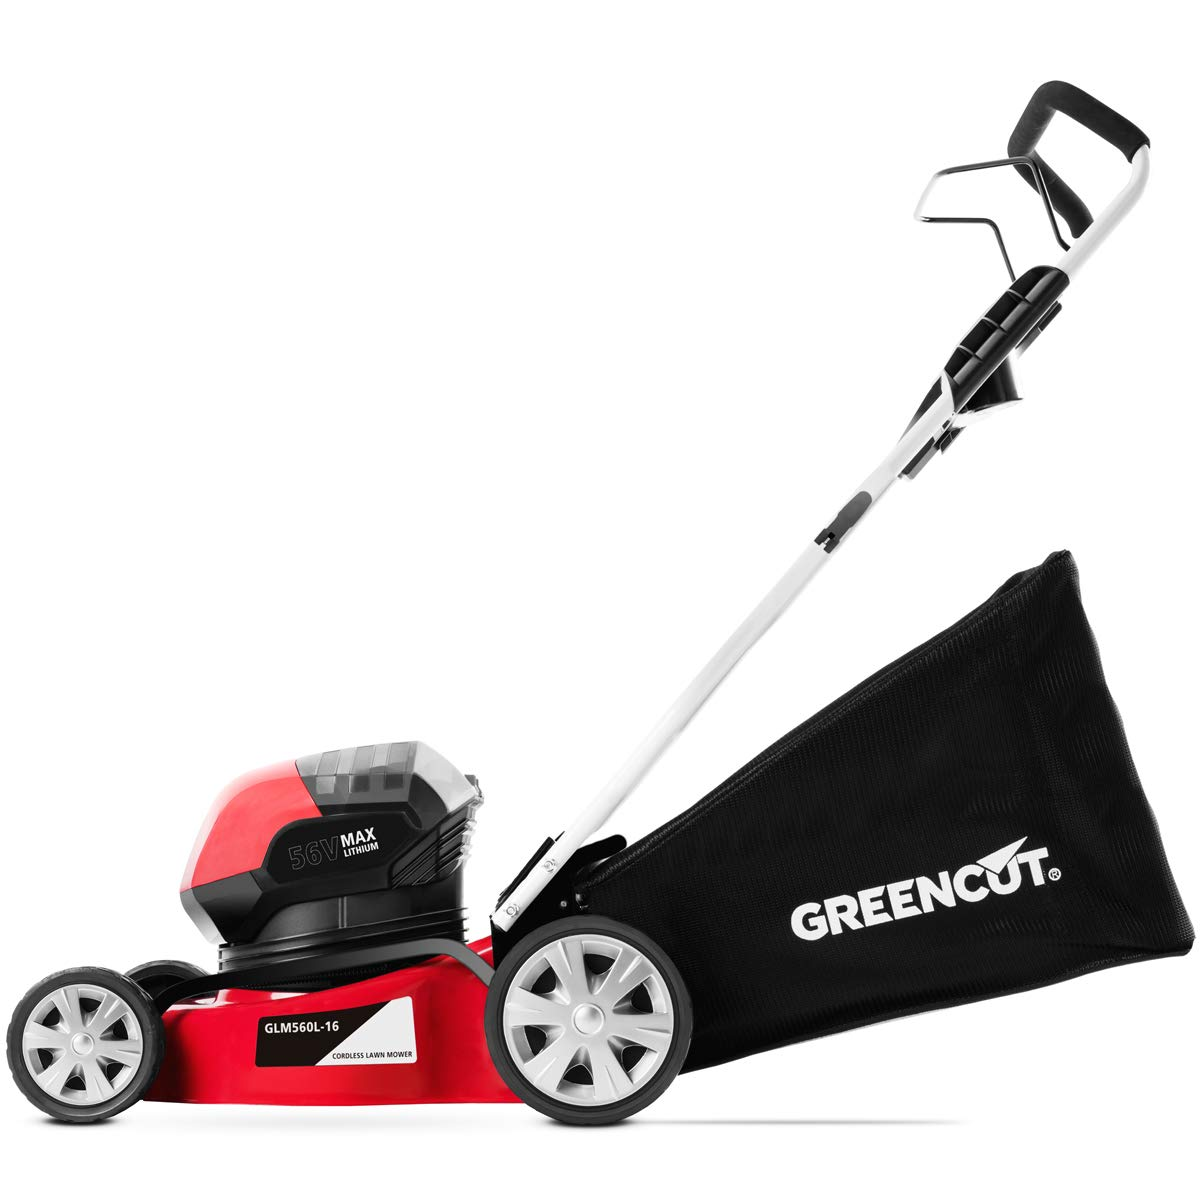 Greencut GLM56LI-ION16 - Cortacésped con tracción manual a batería de litio de 56V y arranque manual, con un ancho de corte de 407mm (o 16